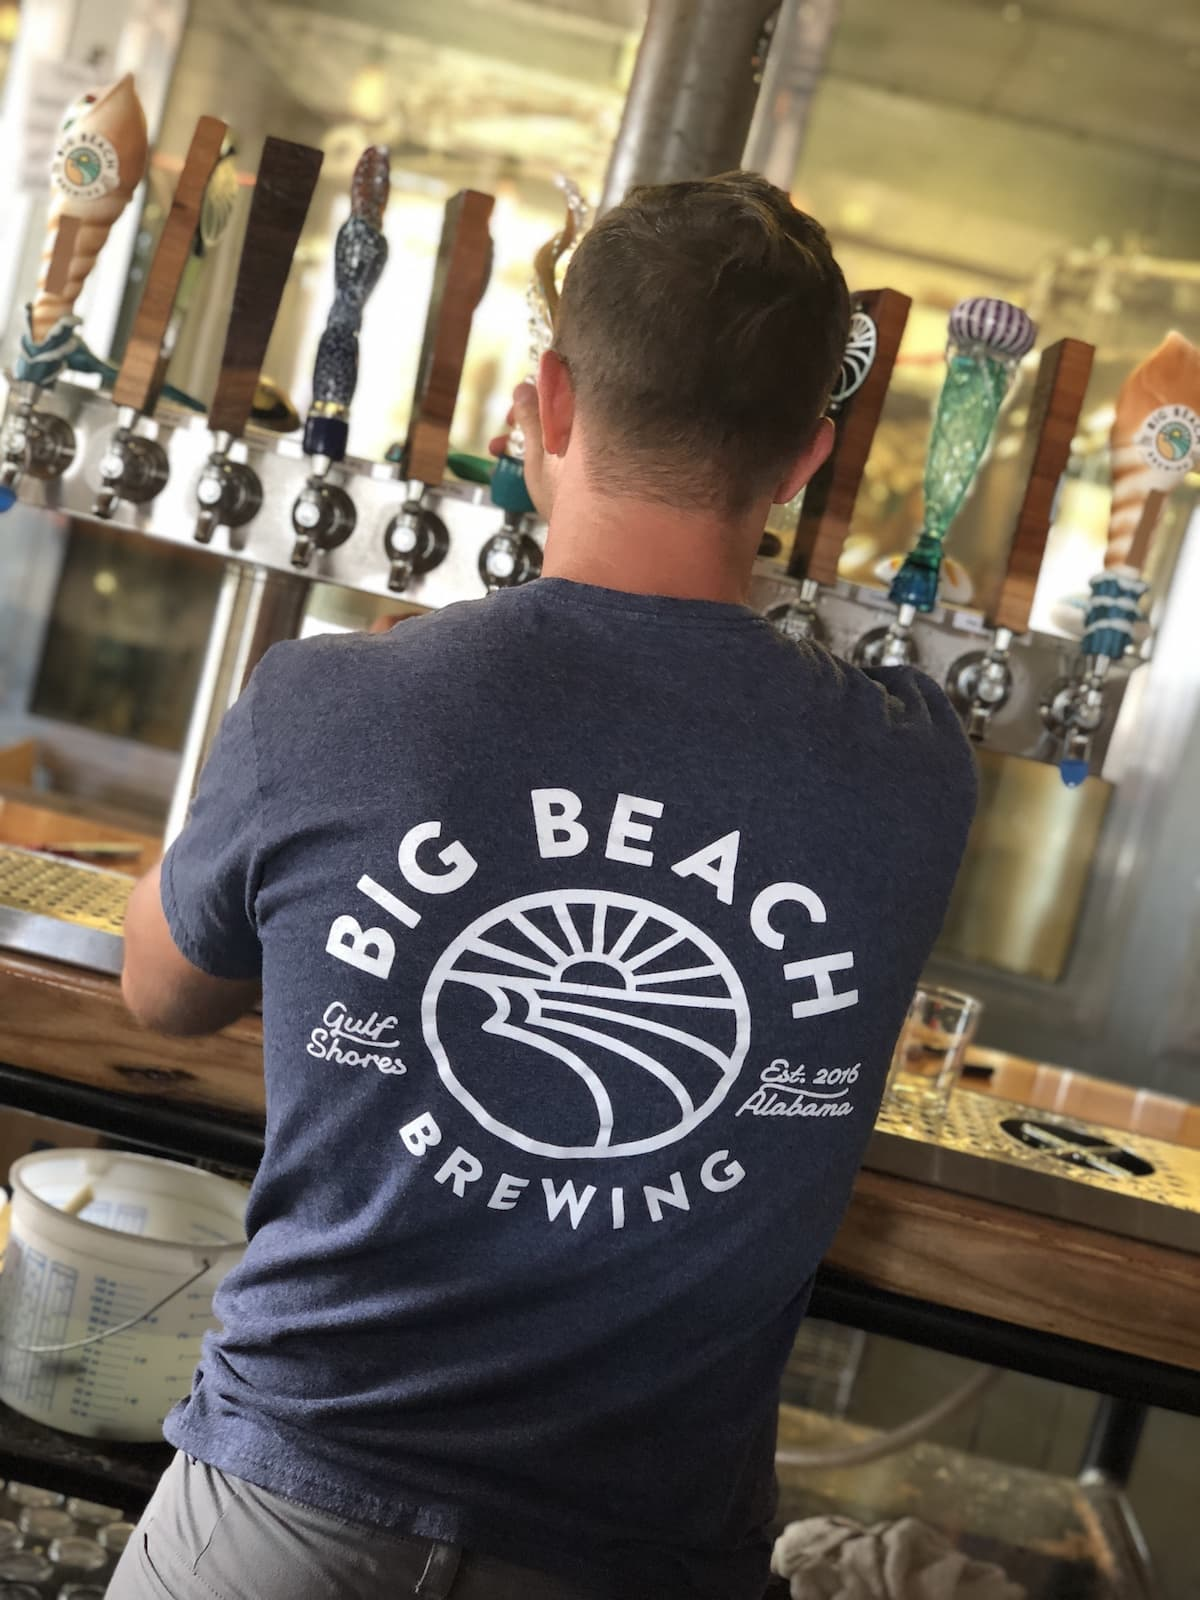 Gulf Shores, Alabama for a Girlfriend Getaway: 5 Reasons to Go - Big Beach Brewing